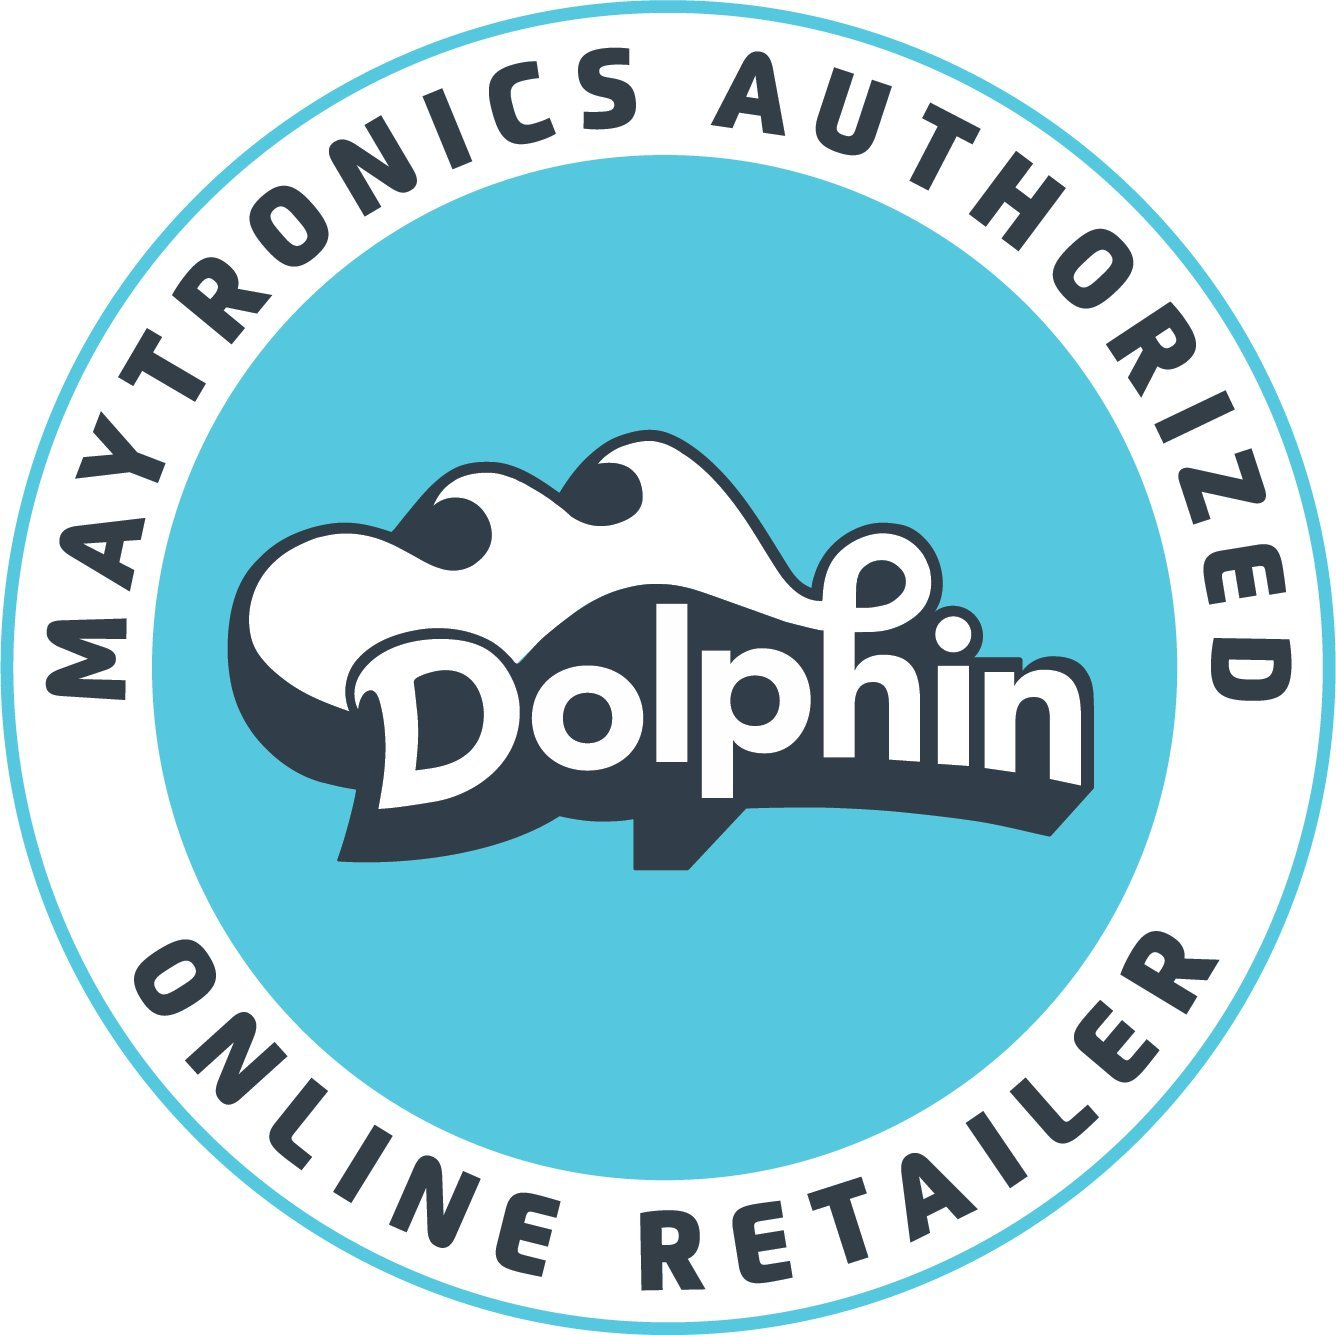 Maytronics 1930251 Dolphin 2.5A Pool Cleaner Power Supply Fuse